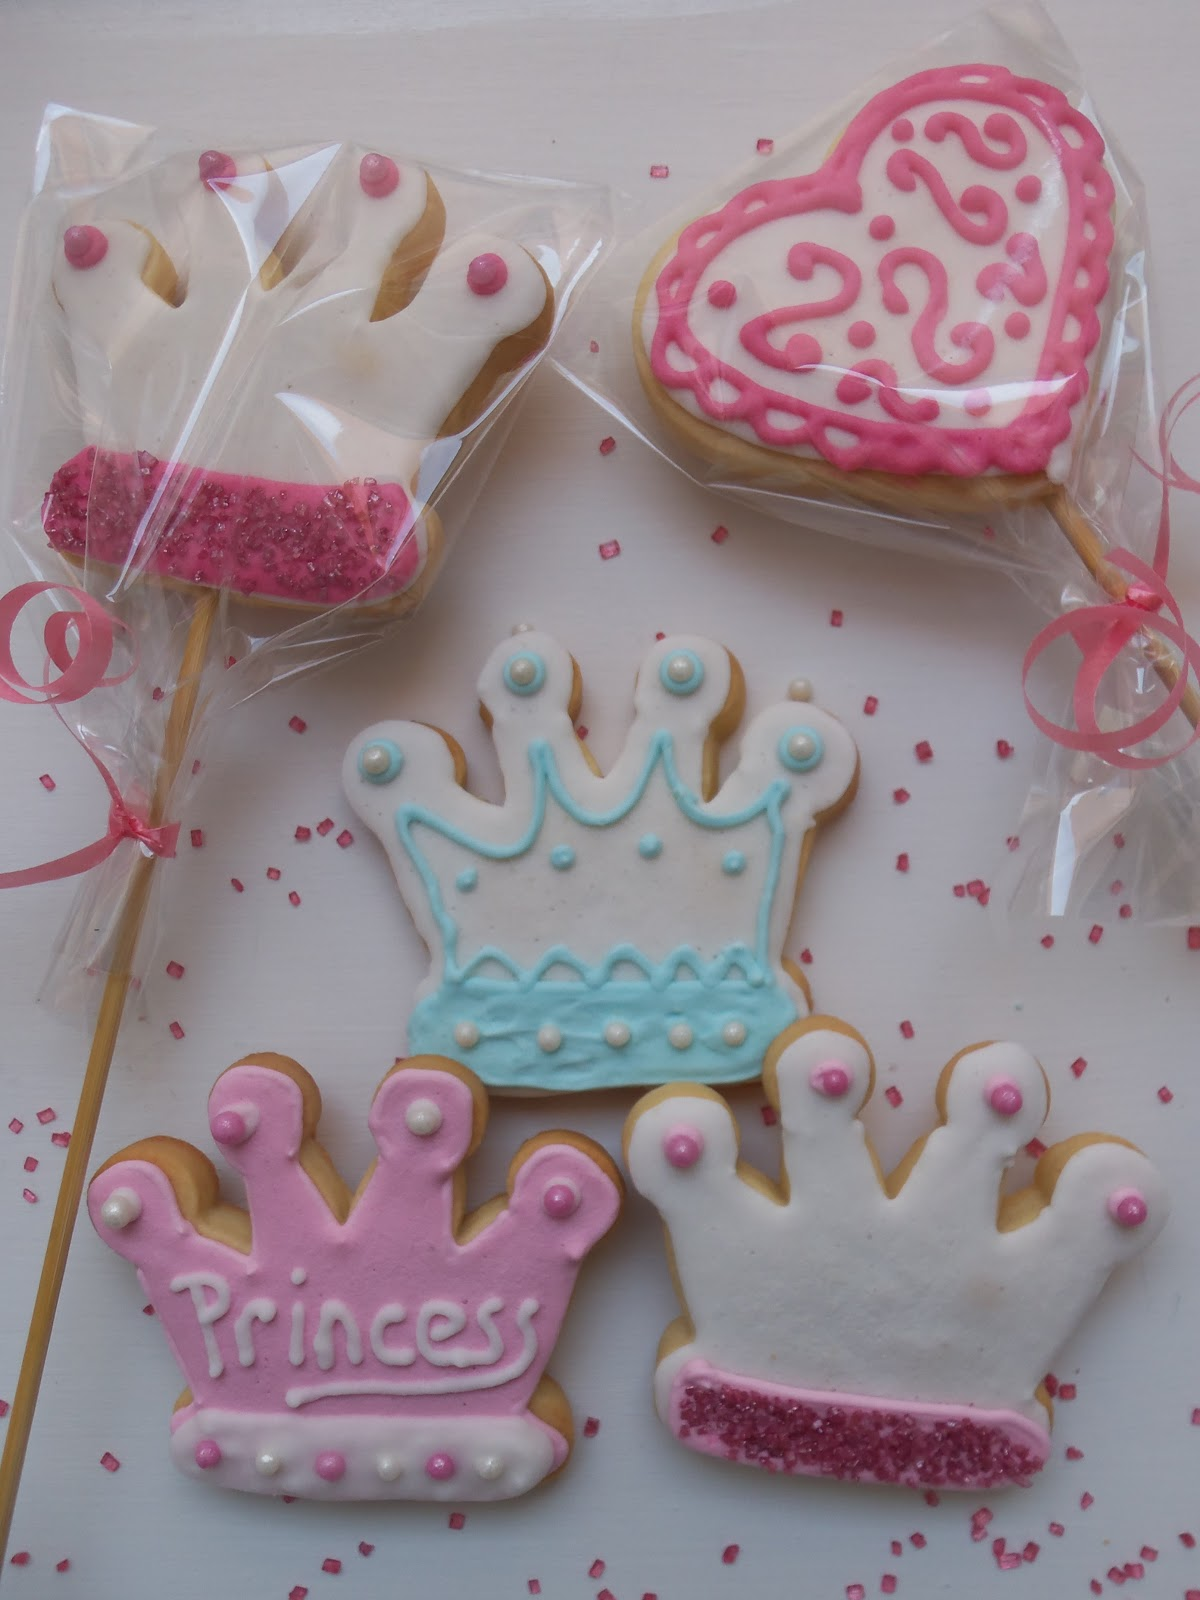 Galletas Decoradas De Princesas Galletas Decoradas Decorcookie Galletas Decoradas Princesas